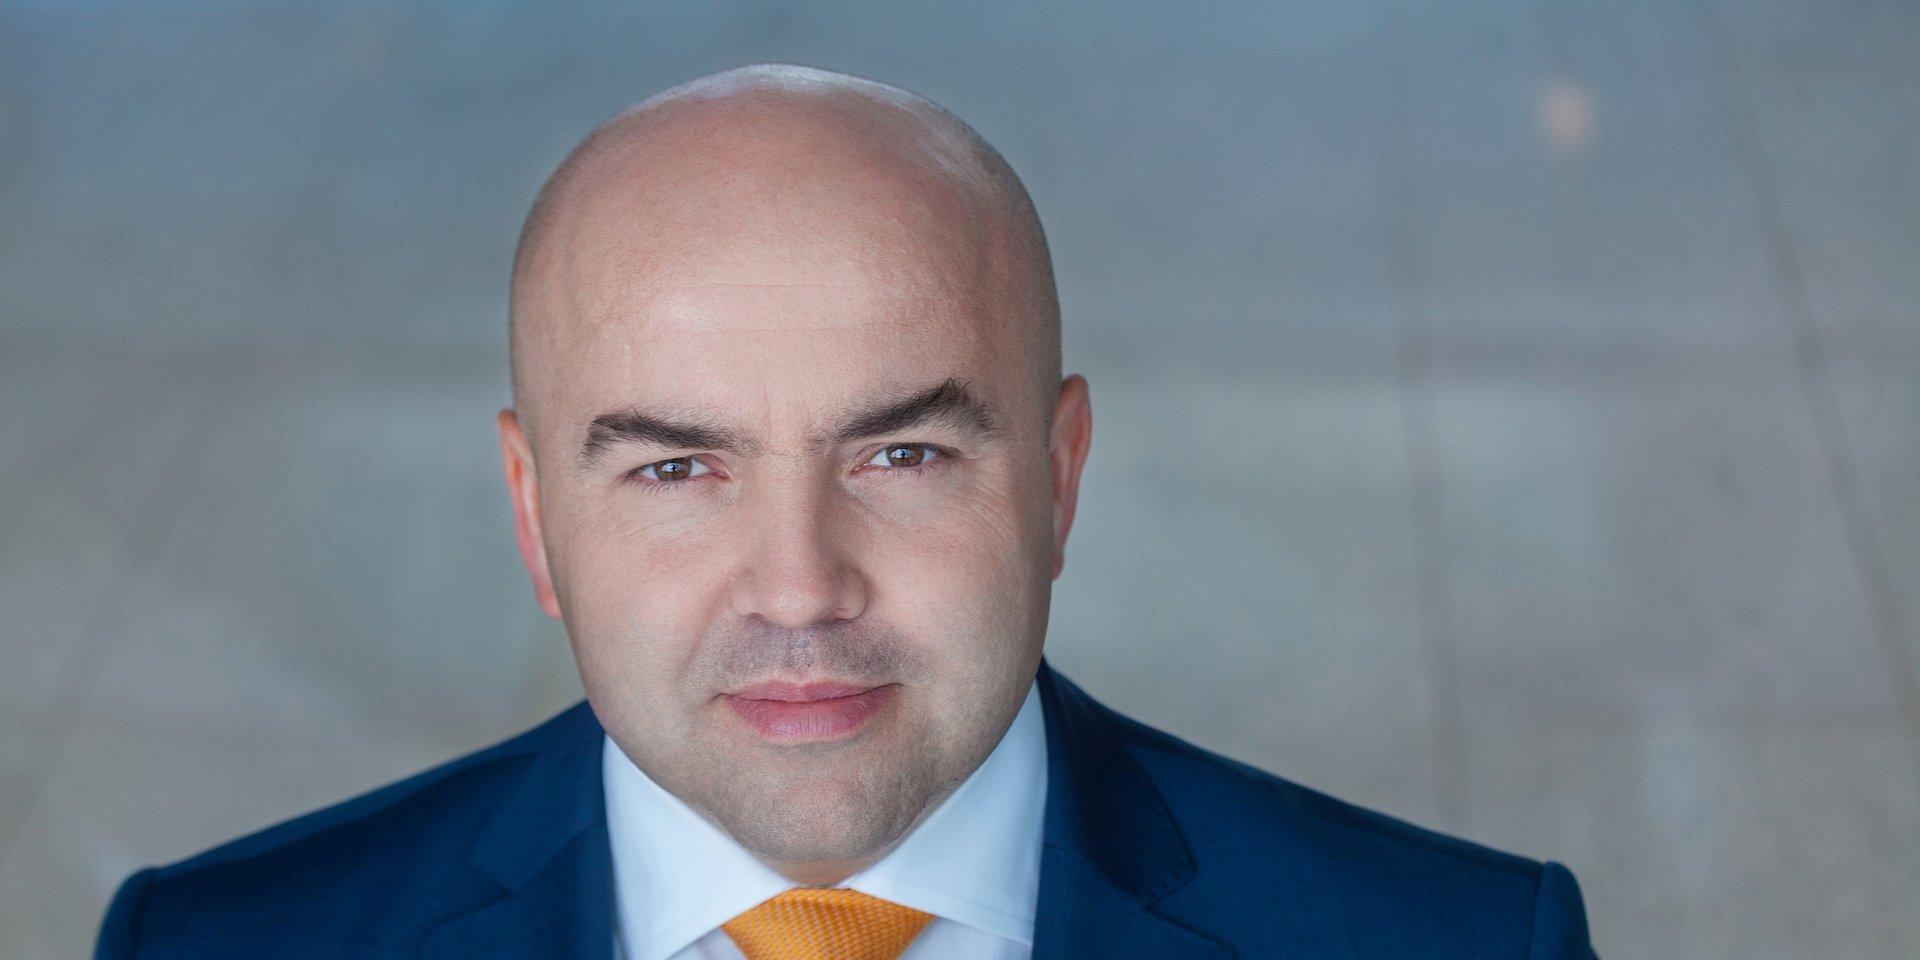 PIOTR BOJAR WILL HEAD UP THE LAND AND DEVELOPMENT ADVISORY DEPARTMENT OF CBRE